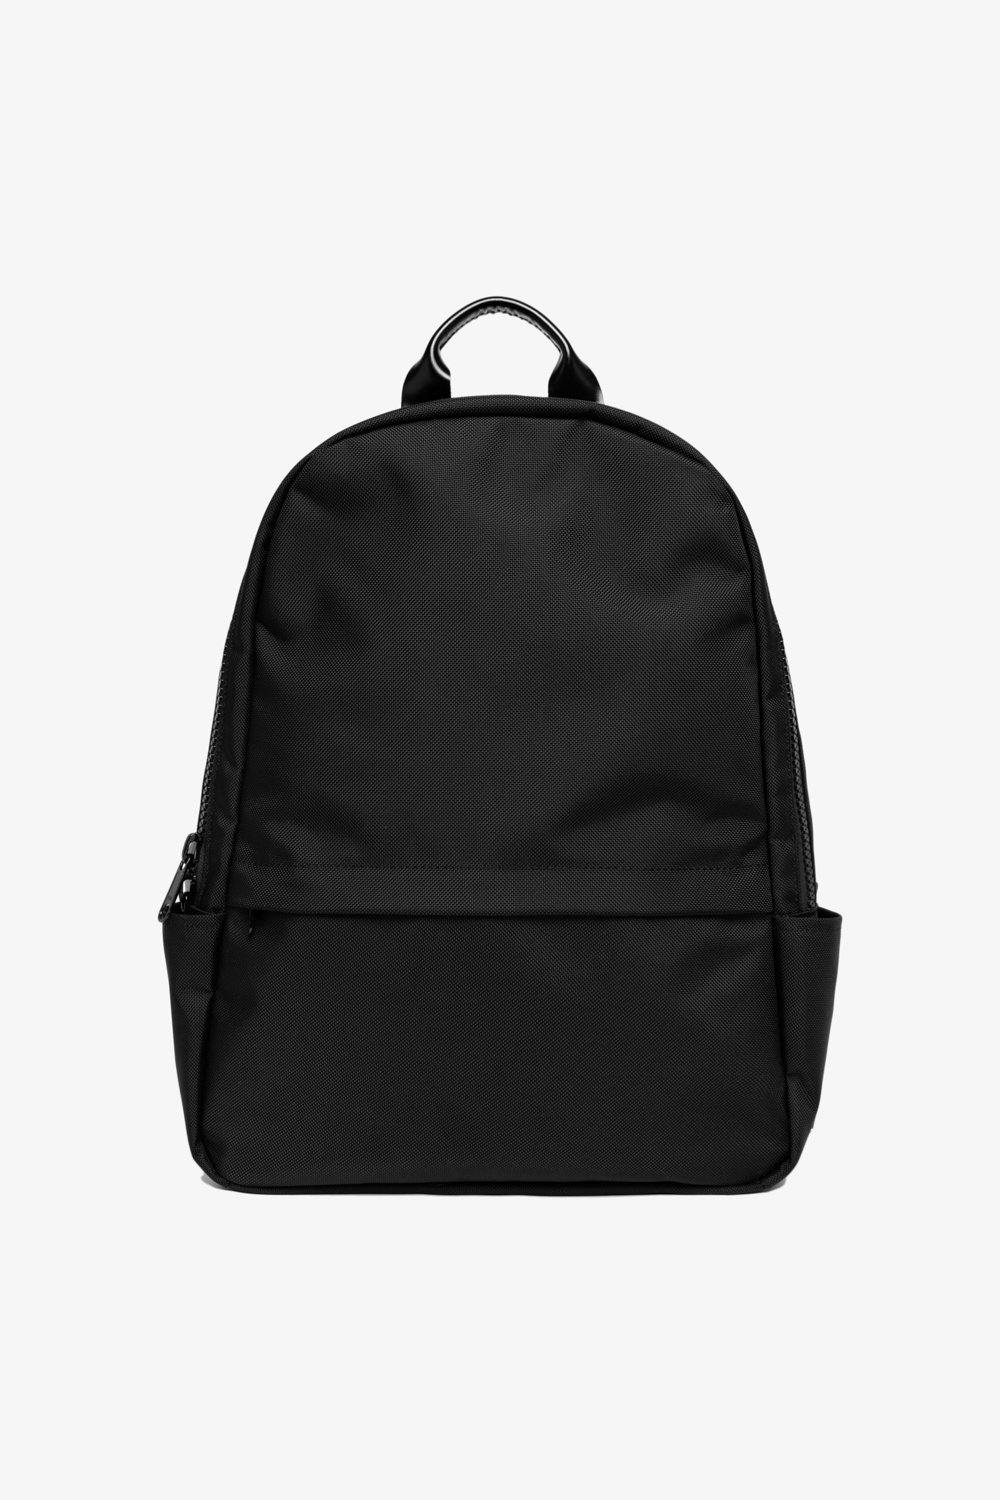 Pablo Backpack - Black Jack + Mulligan Black